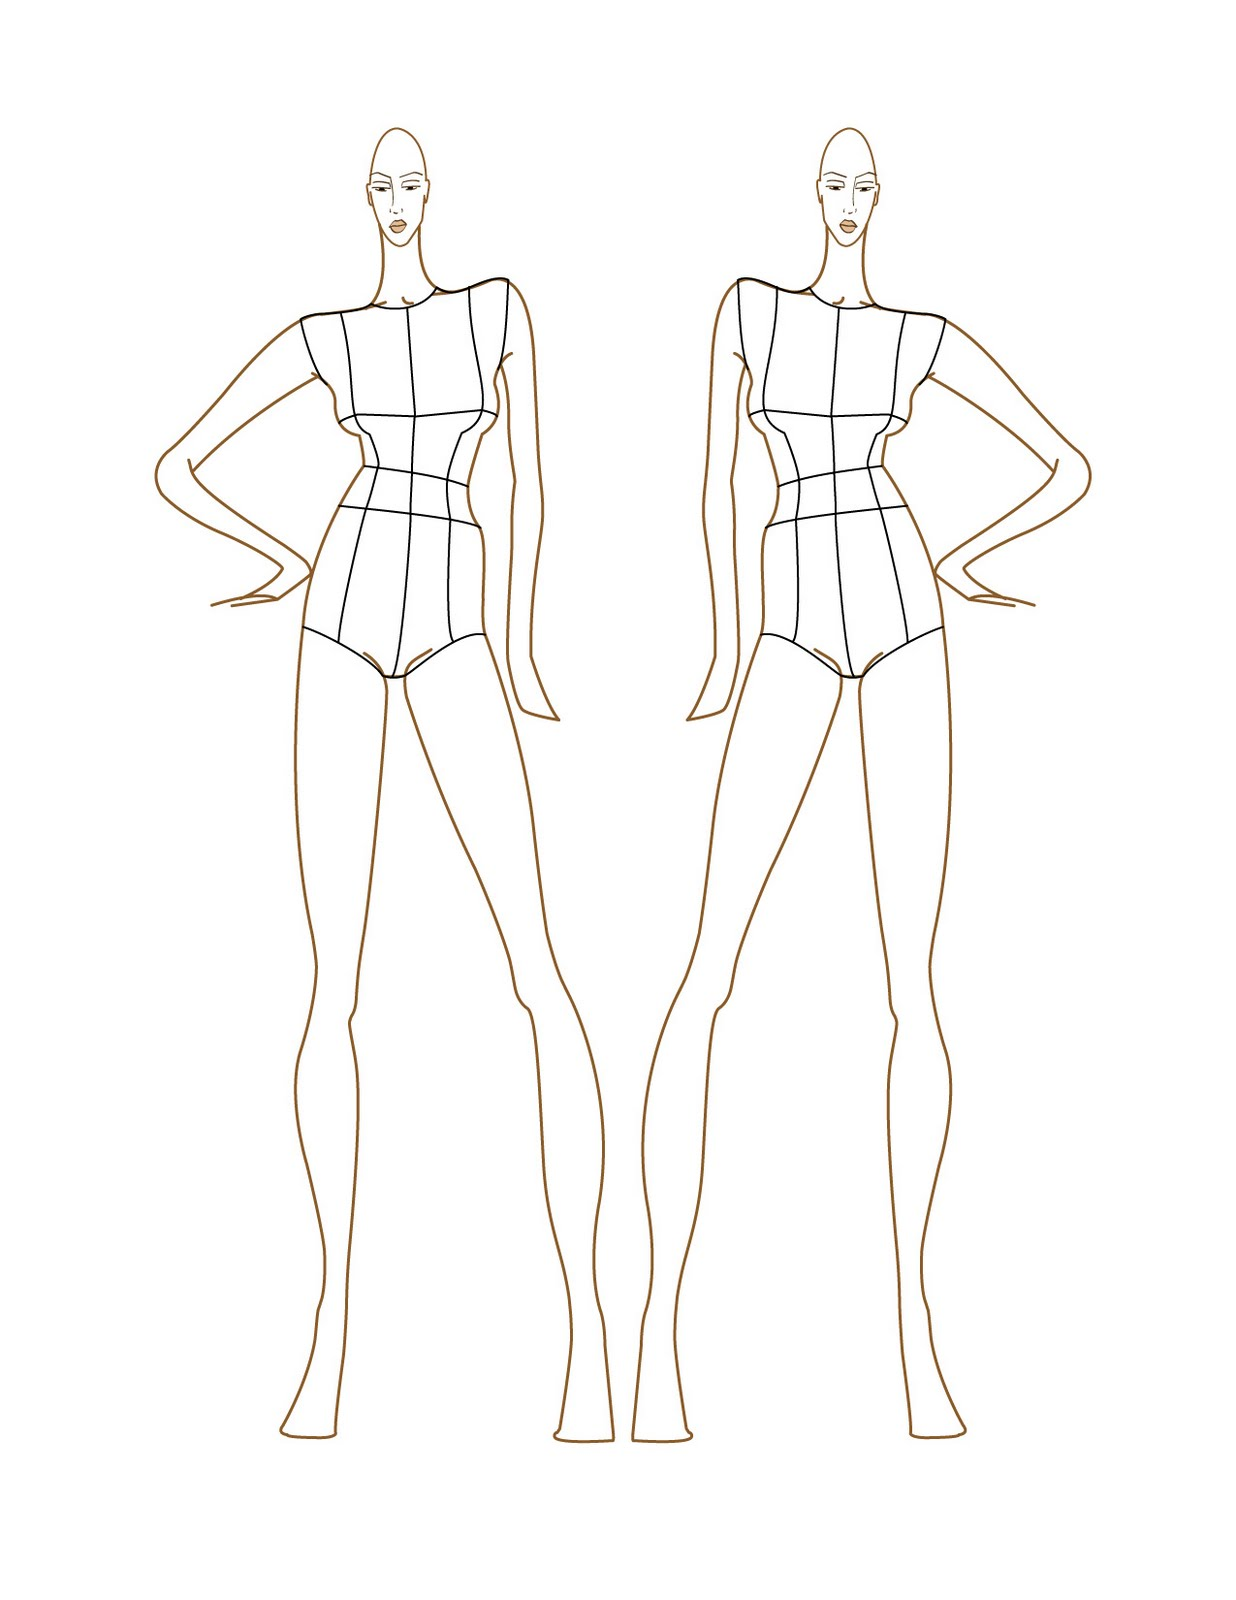 12 Costume Design Template Images Fashion Design Model Outline